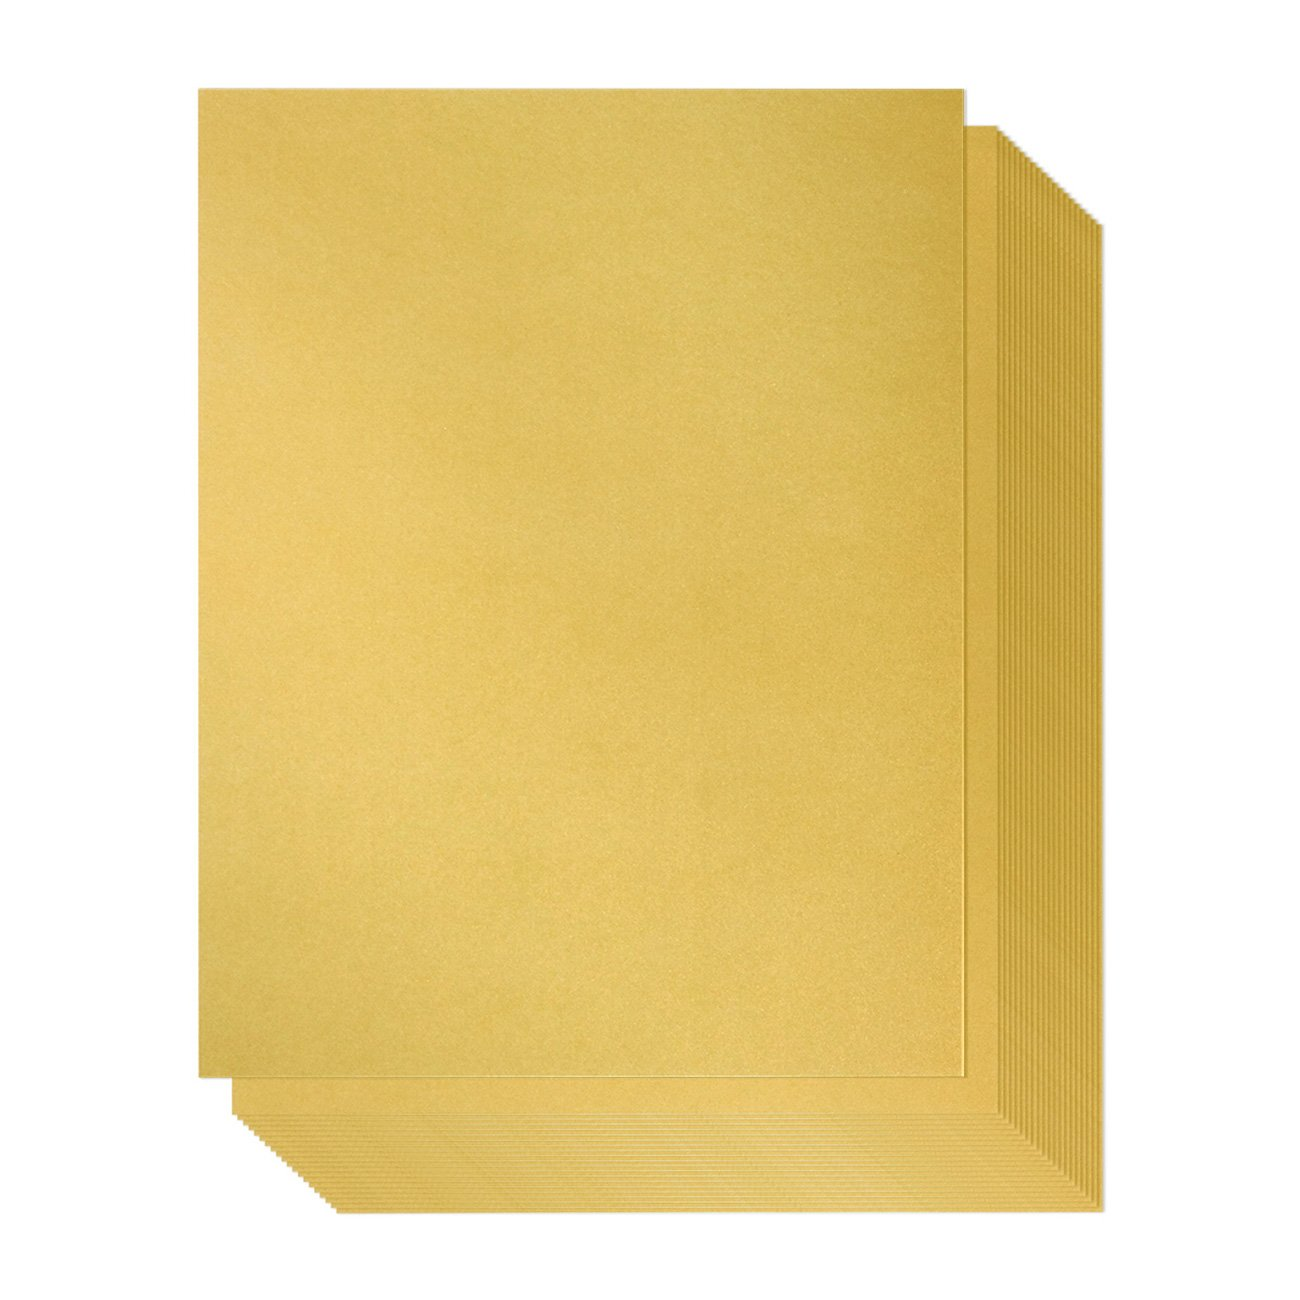 Shimmer Paper – 96-Pack Gold Metallic Cardstock Paper, Double Sided, Laser Printer Friendly - Perfect for Weddings, Baby Showers, Birthdays, Craft Use, Letter Size Sheets, 8.5 x 0.03 x 11 Inches by Best Paper Greetings